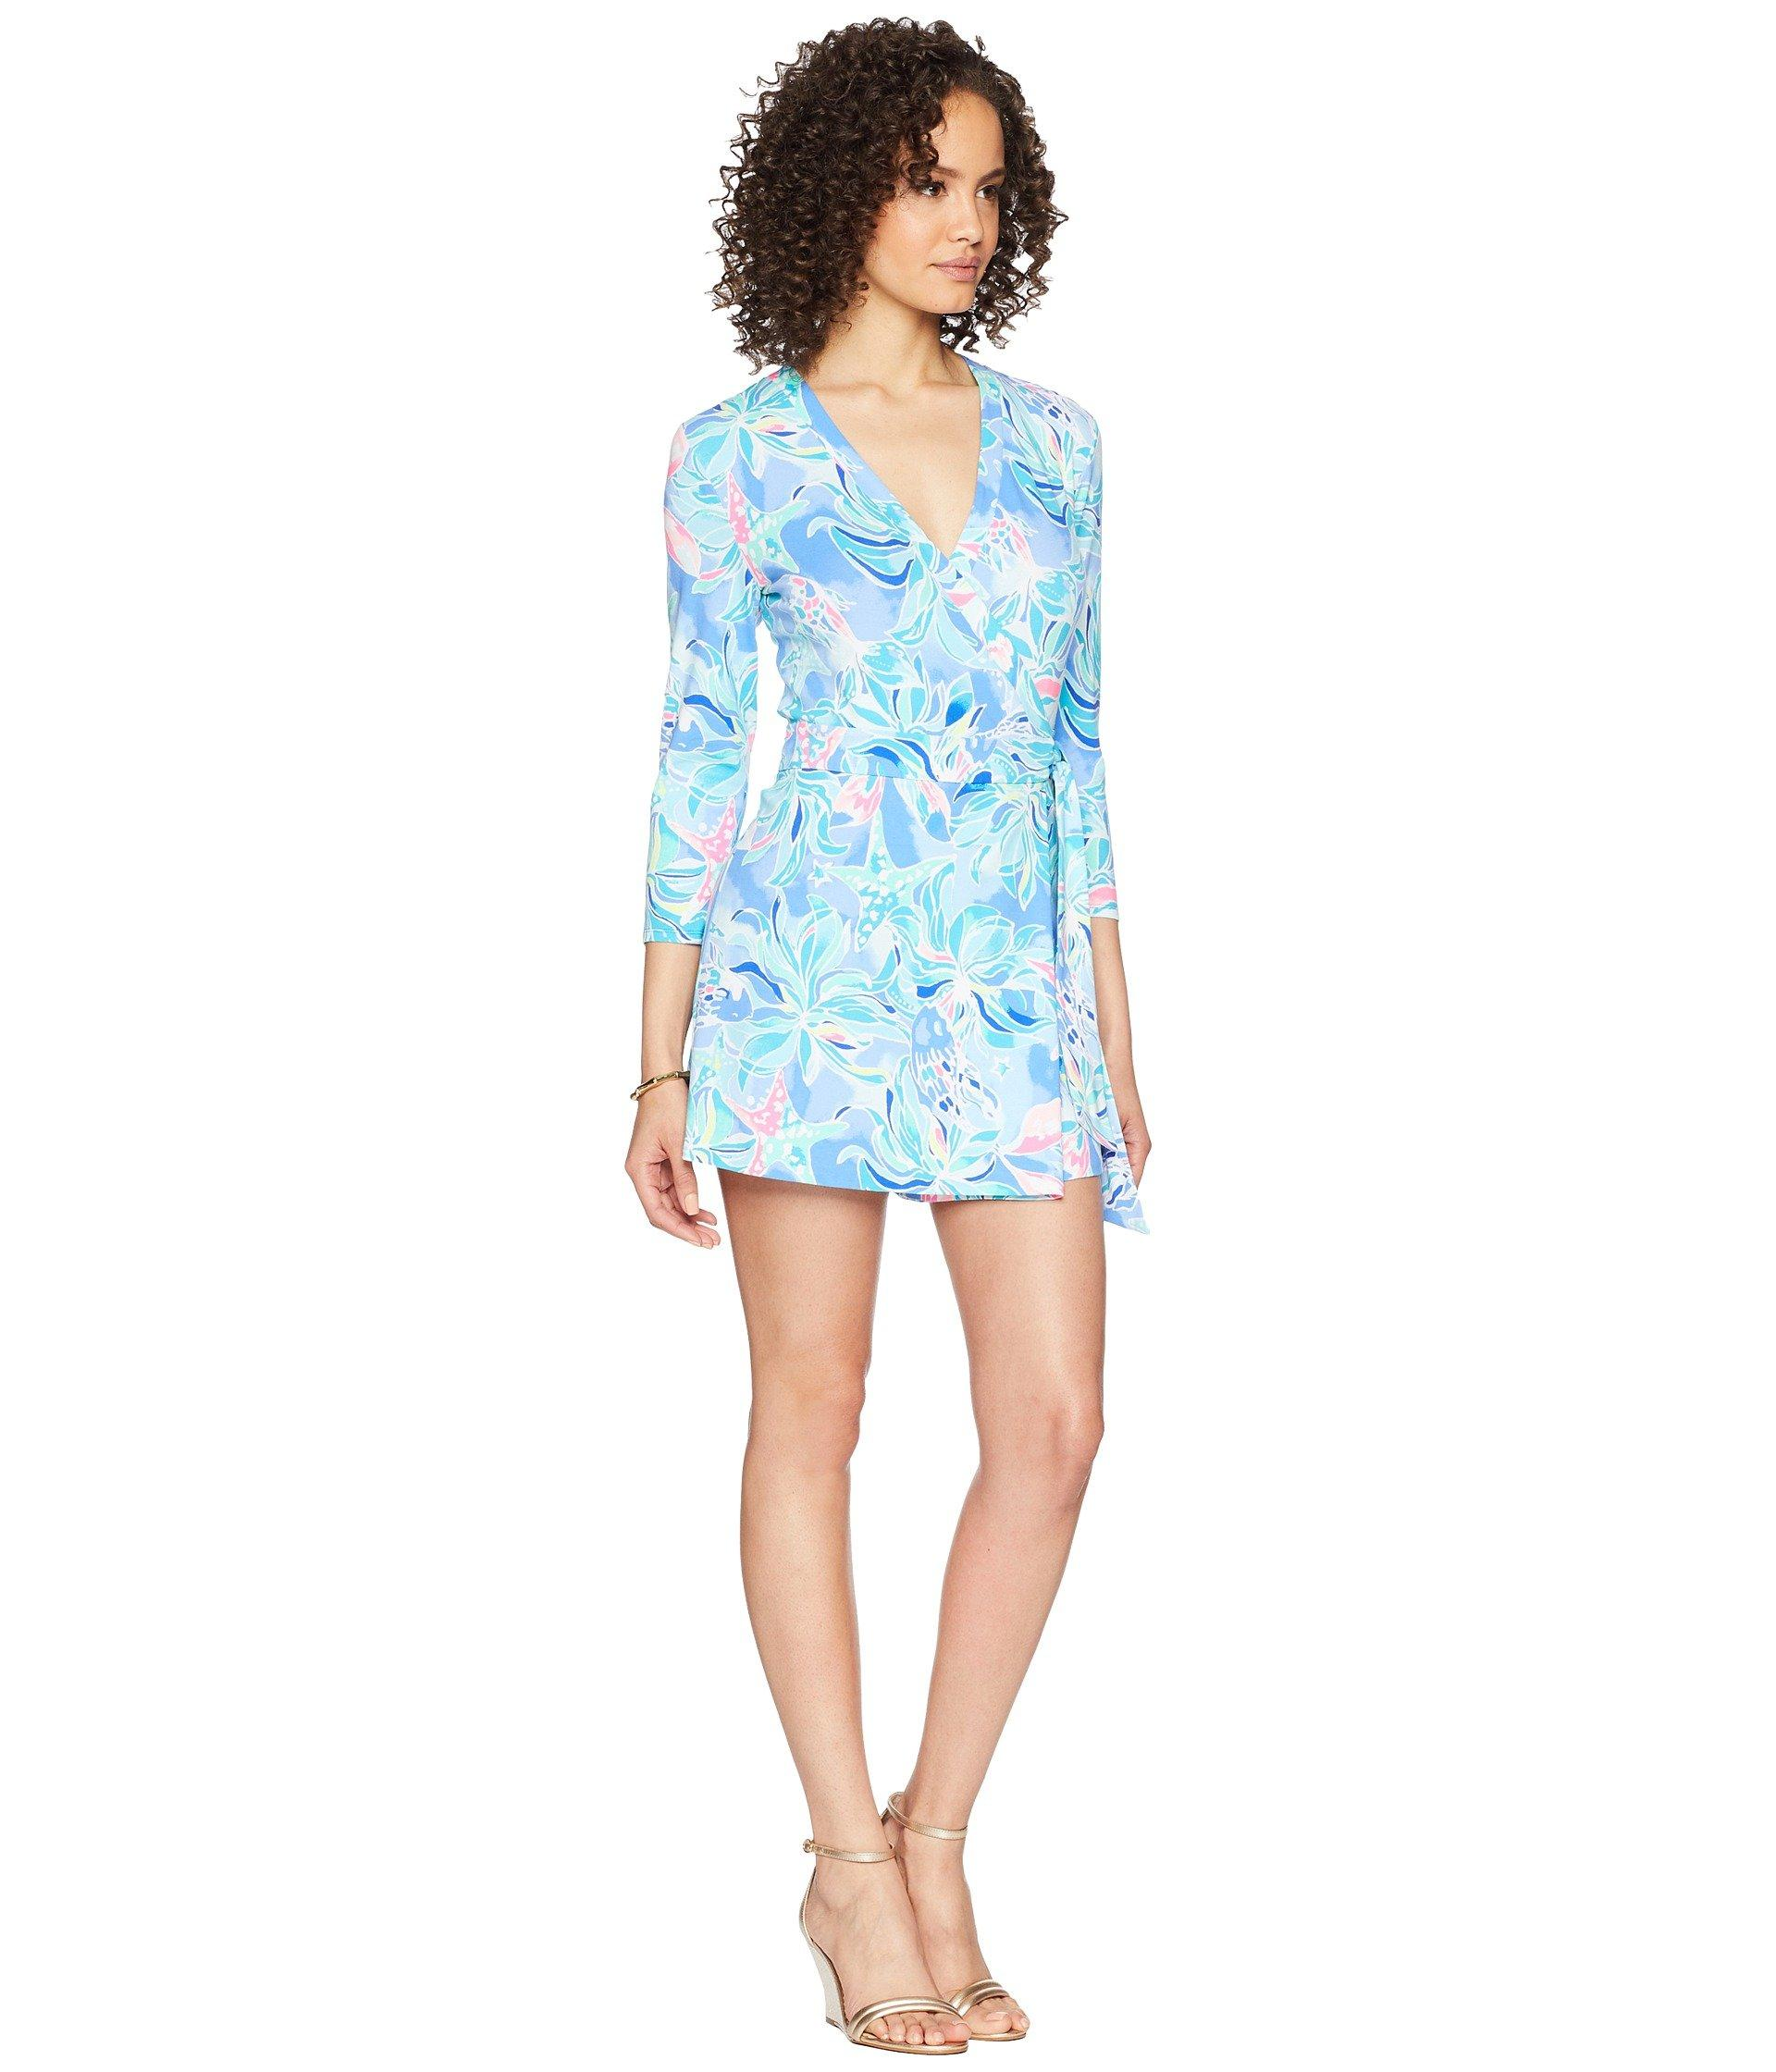 32be87a4c000 Lyst - Lilly Pulitzer Karlie Wrap Romper in Blue